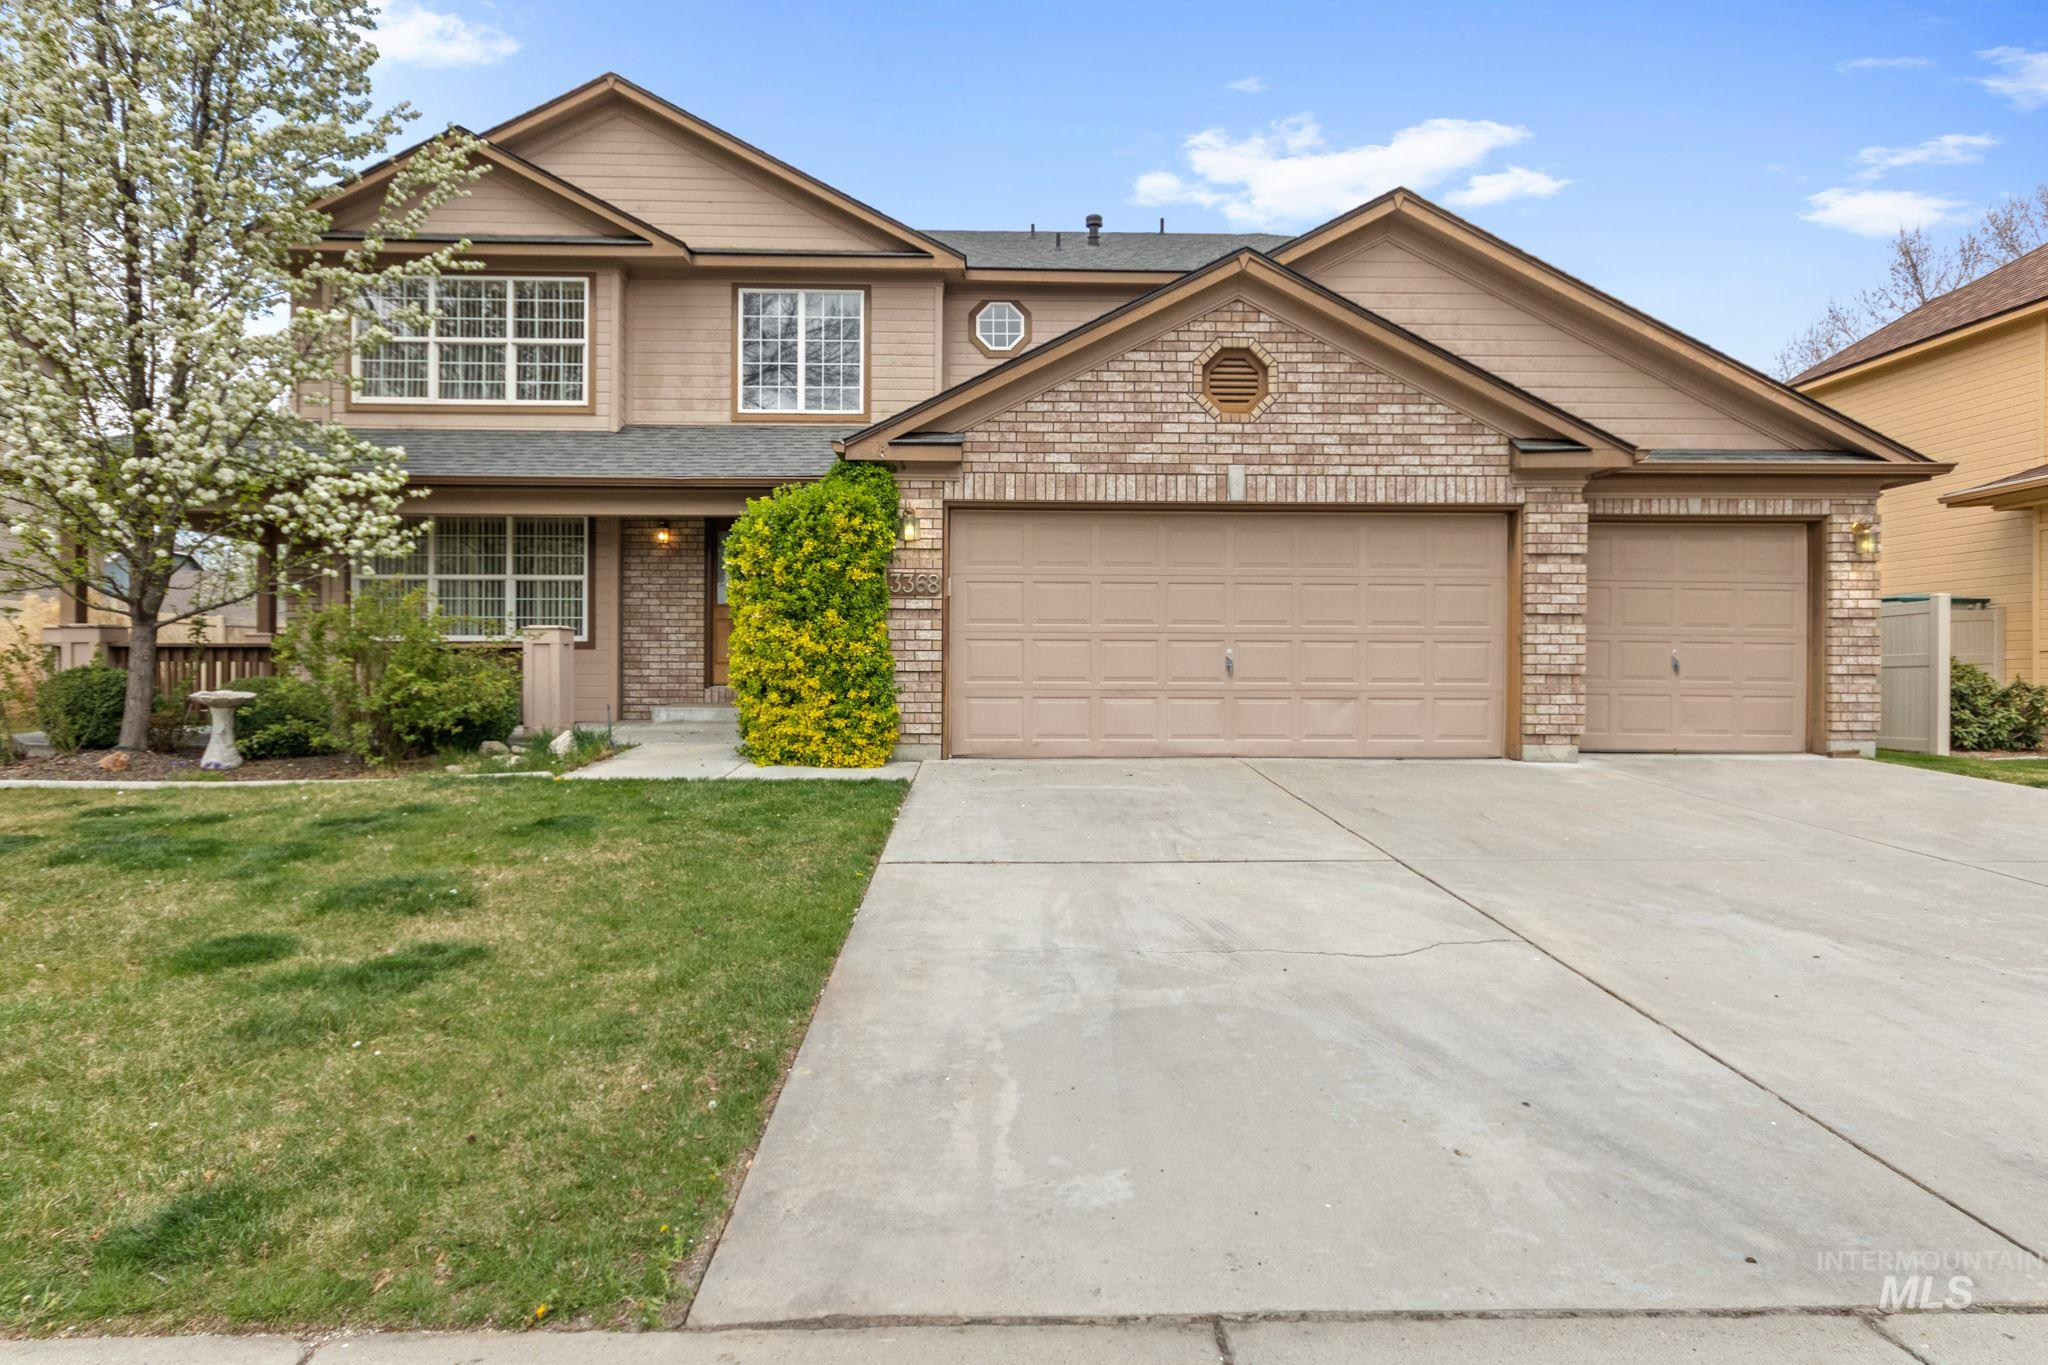 13368 W Bellflower Drive Property Photo - Boise, ID real estate listing